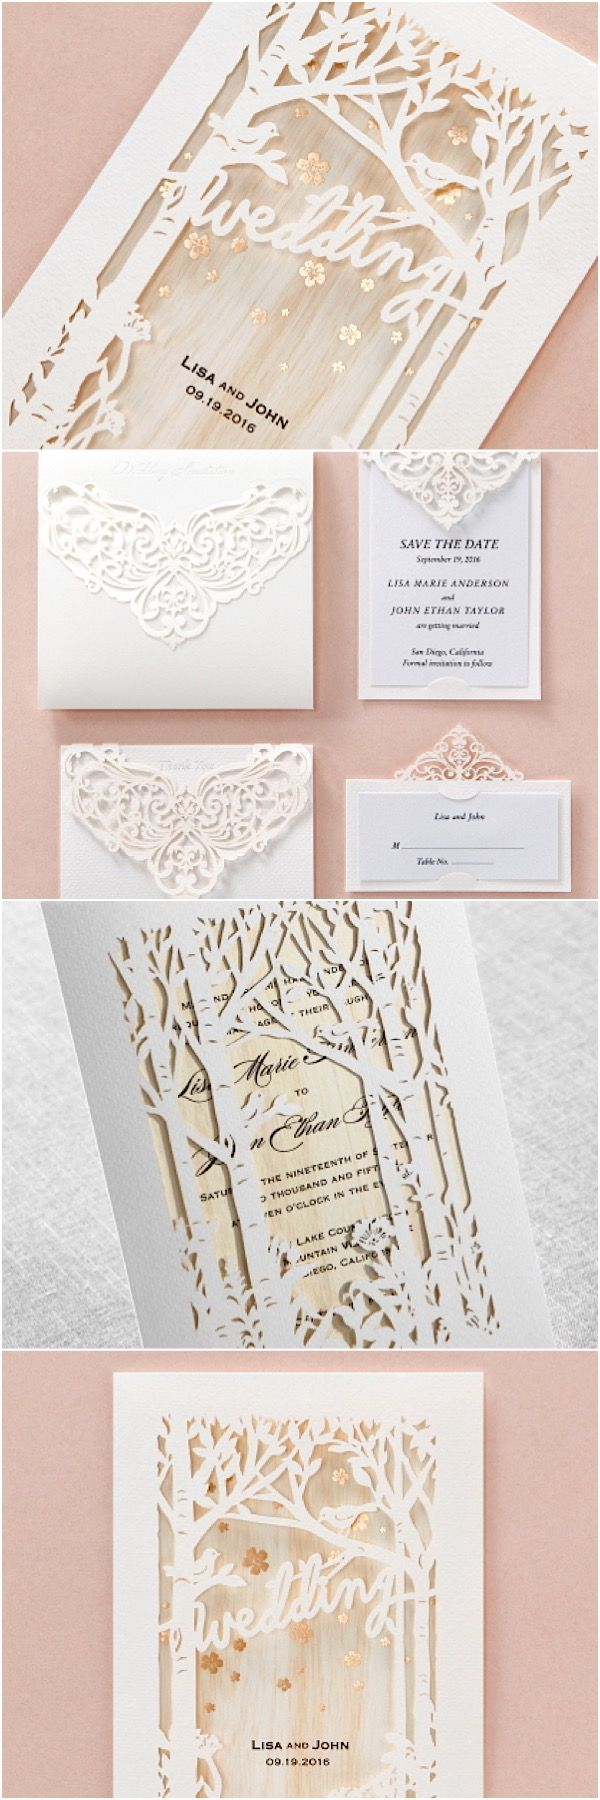 wildflower wedding invitation templates%0A Chic and unique wedding invitations from Bweddinginvitations